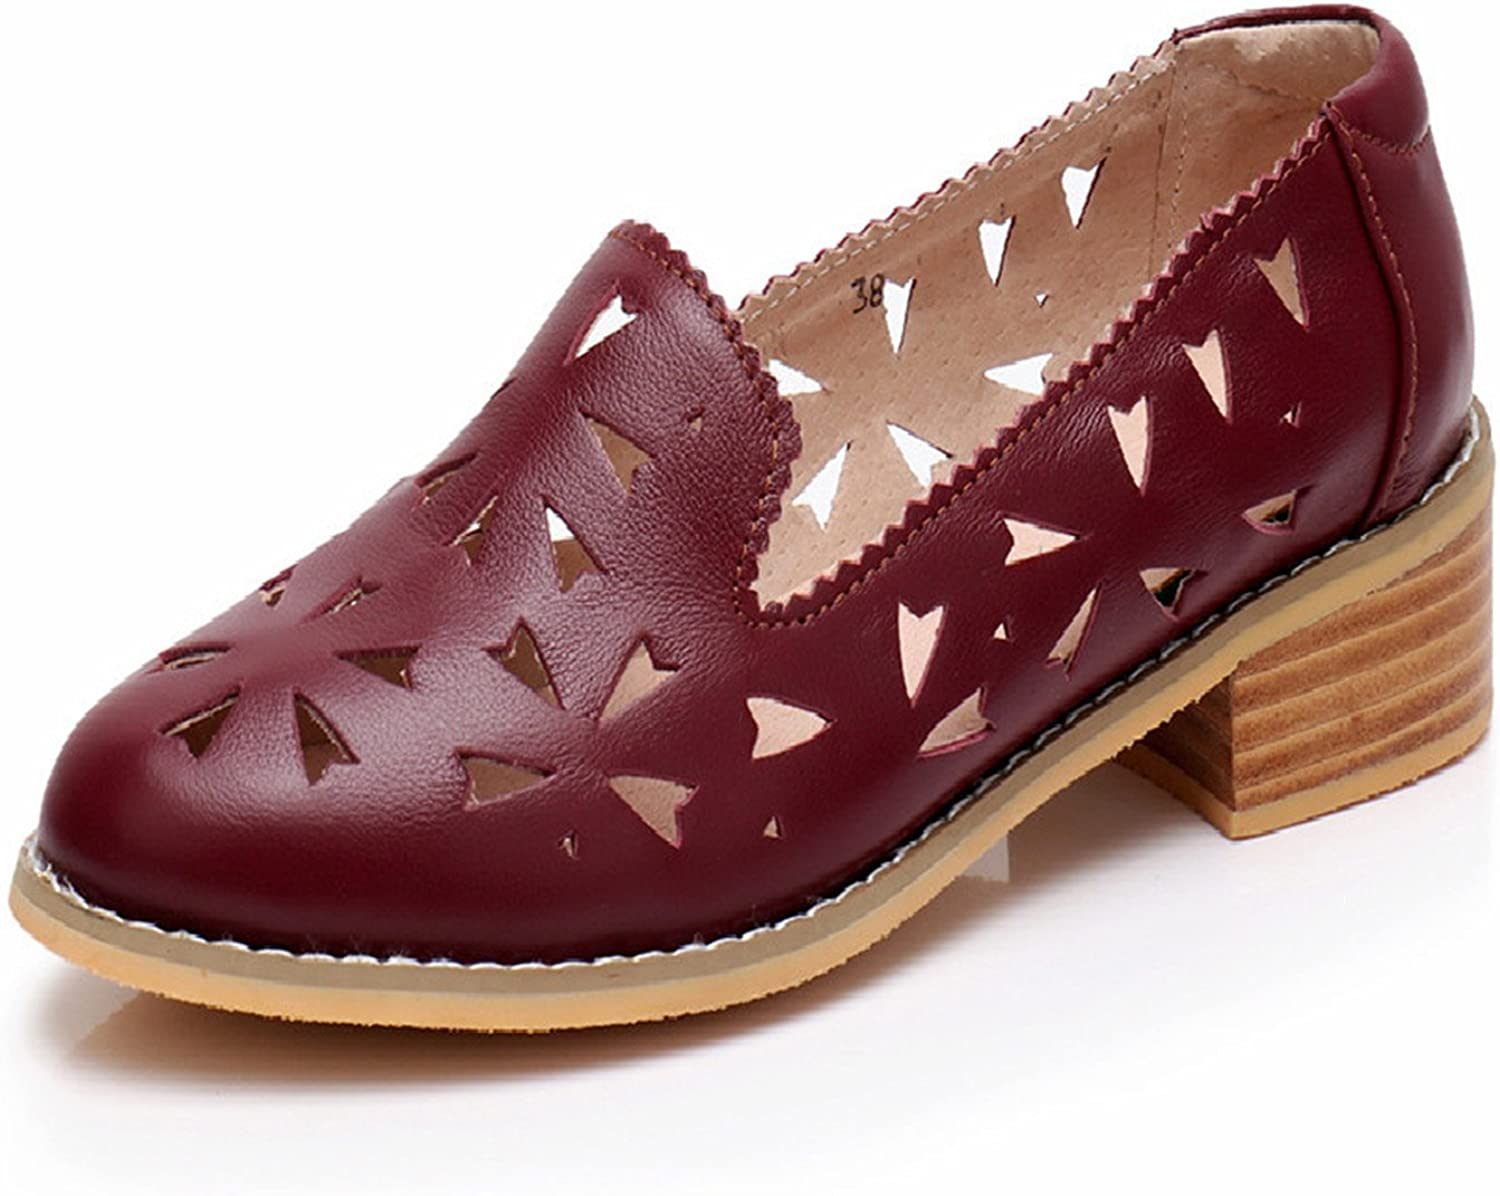 Spyman Genuine Leather Designer Vintage shoes Sandals Handmade bluee Red Yellow Oxford shoes for Women New Spring Big US Size 11